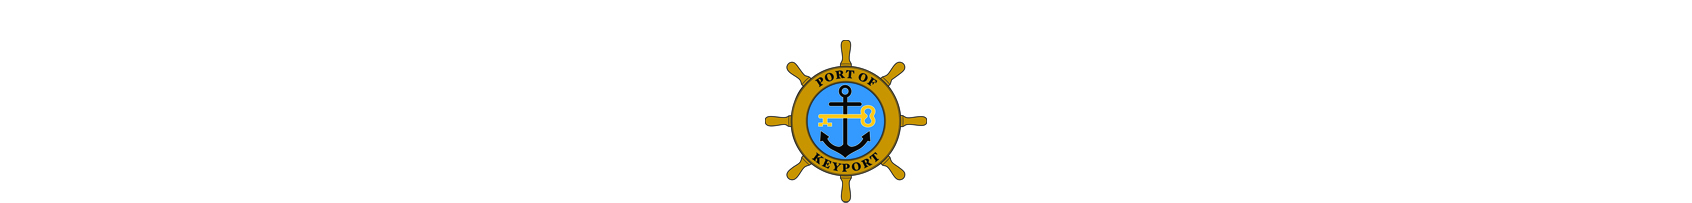 Port of Keyport logo